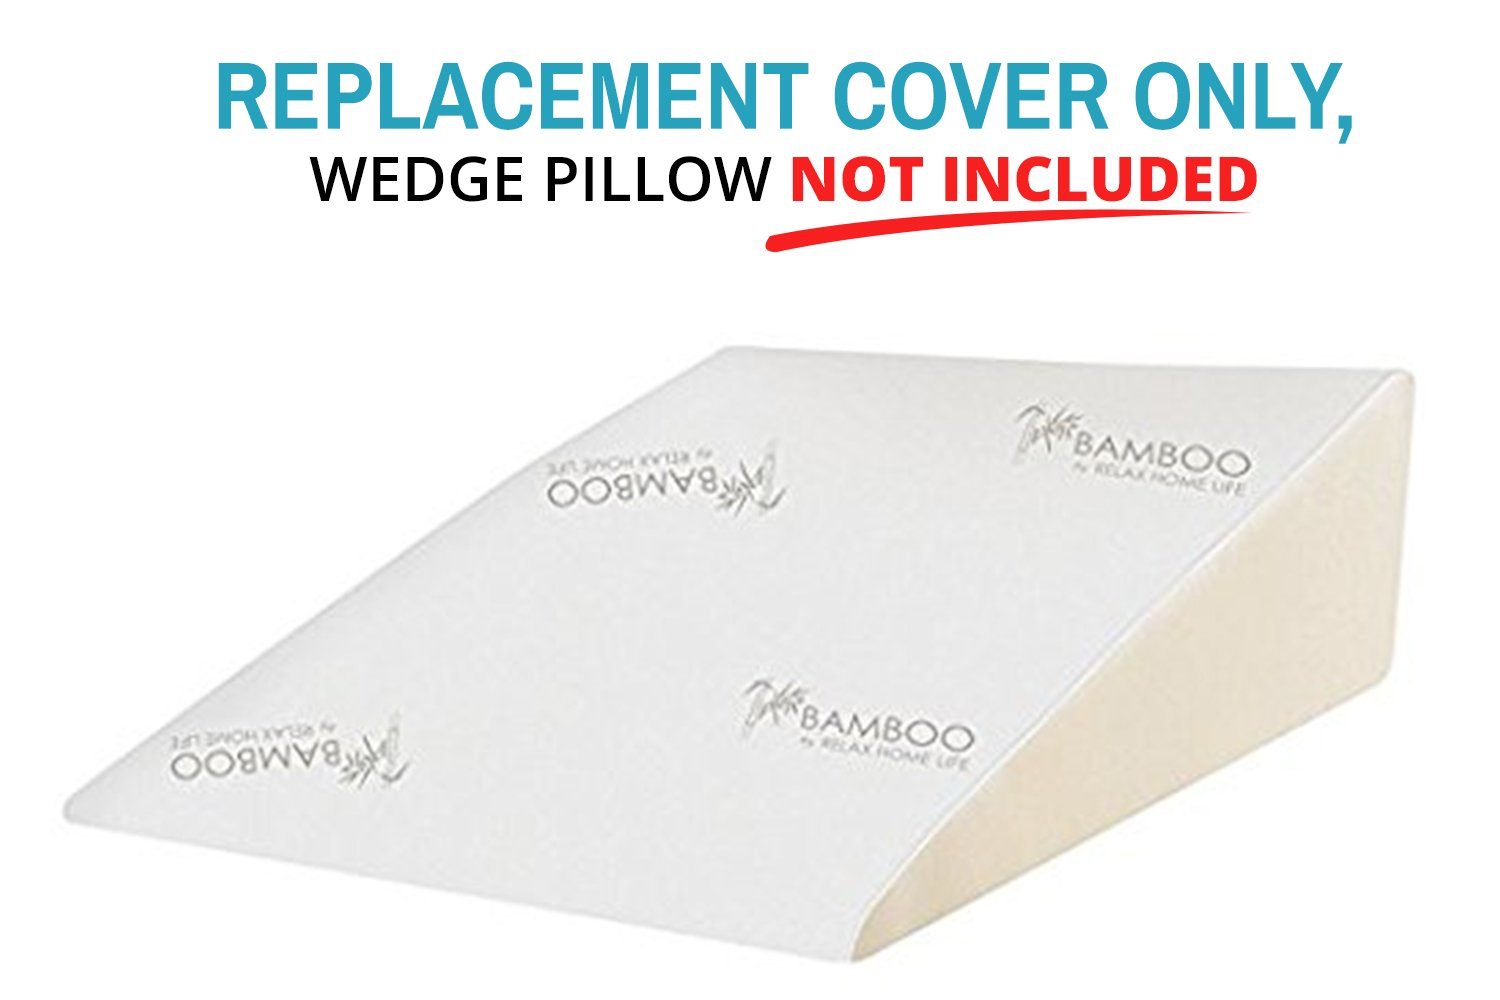 Relax Home Life - Foam Bed Wedge Bamboo Pillow Replacement Cover ONLY - Designed to Fit Only Relax Home Life Wedge Pillows (30.5''W x 33''L x 12''H)